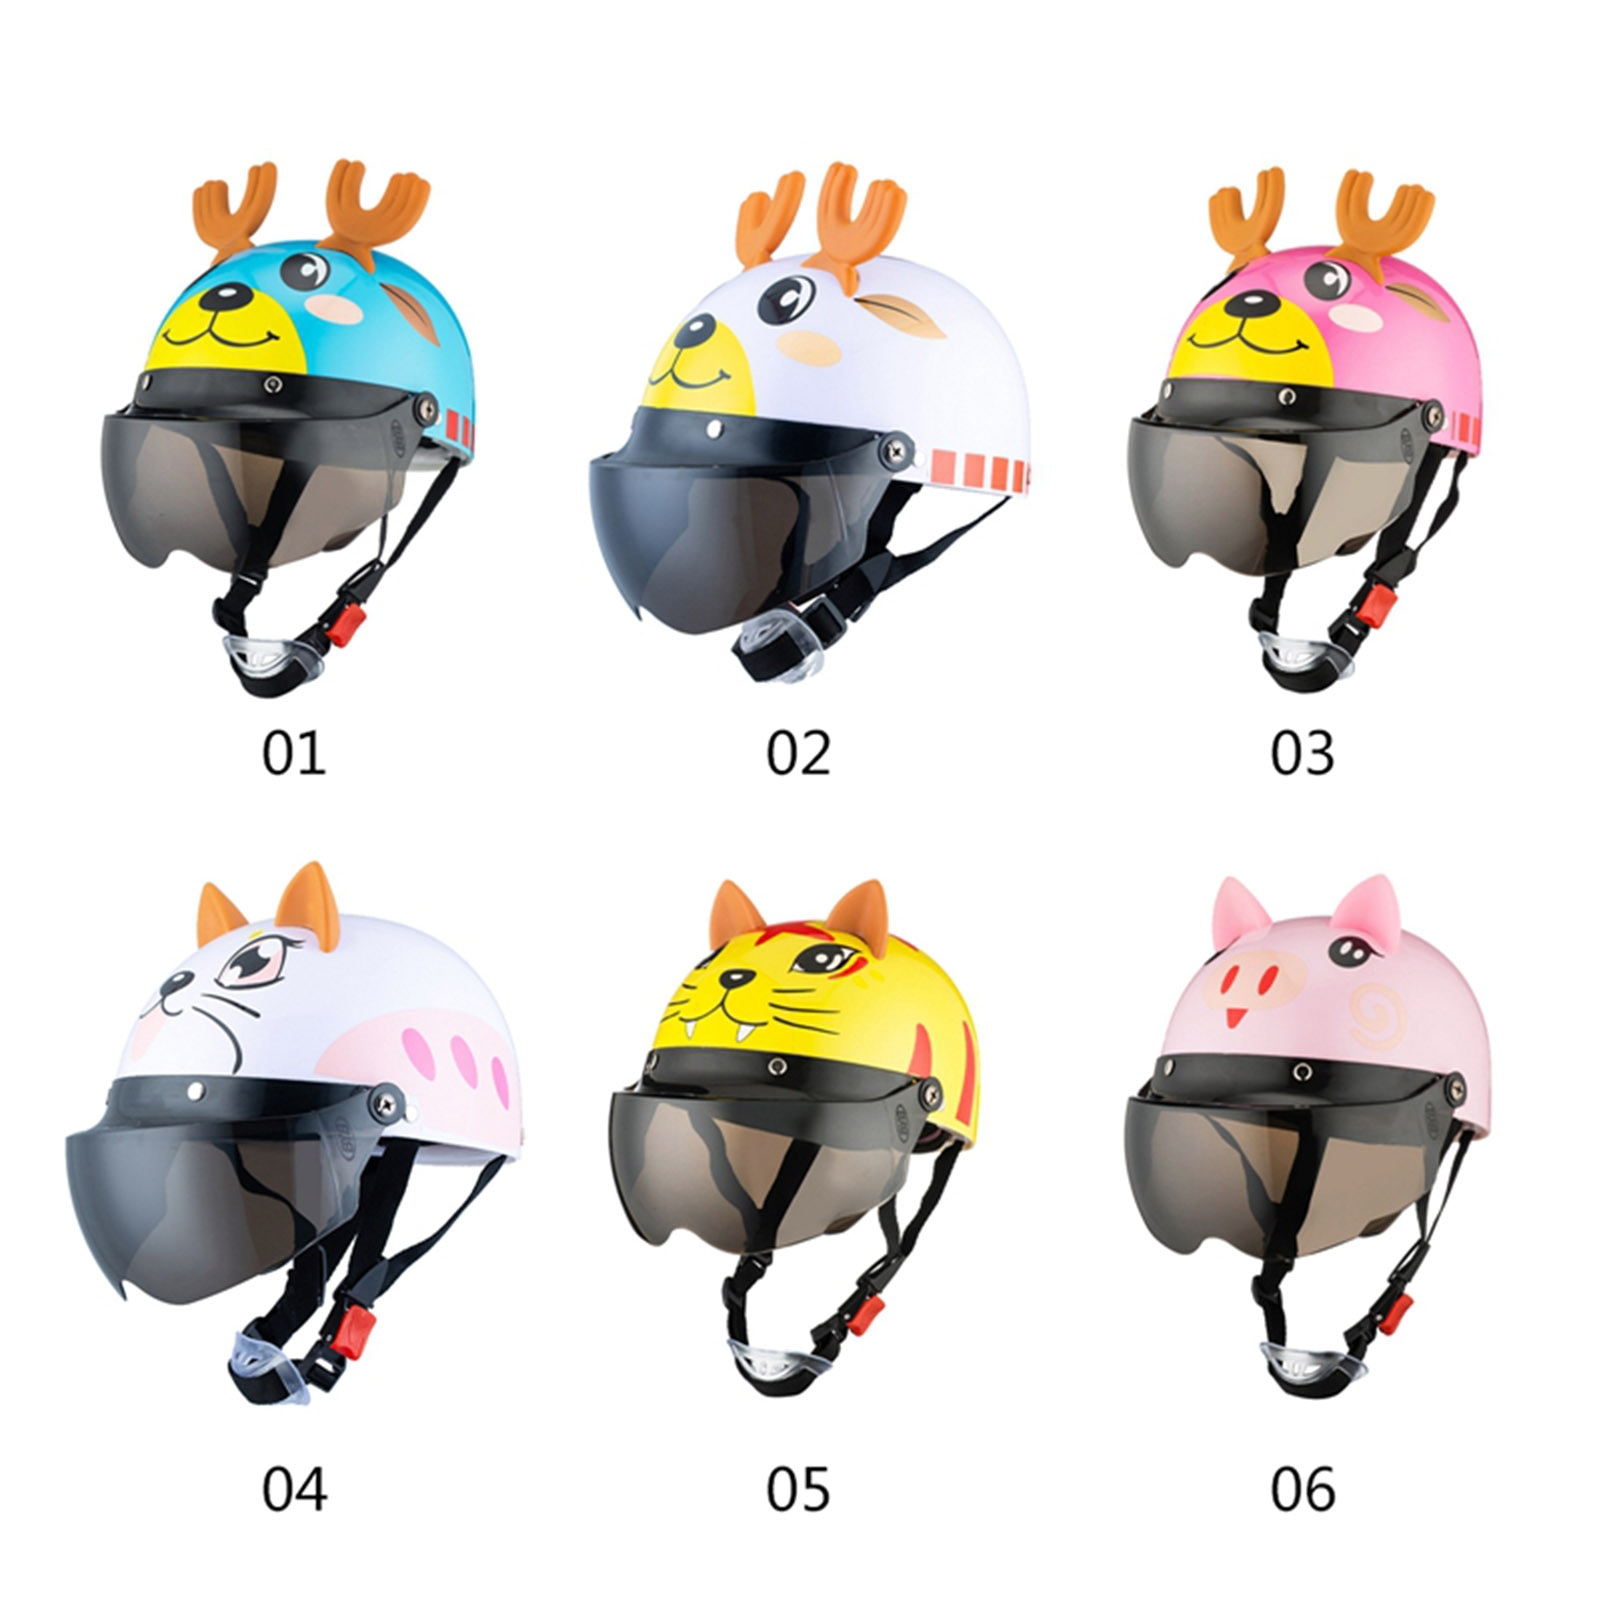 Motorcycle Riding Helmet Kids Safety Cycling Helmet Lightweight Cute Bicycle With Anti-fog Lens Bike E-bike Protection Helmet enlarge